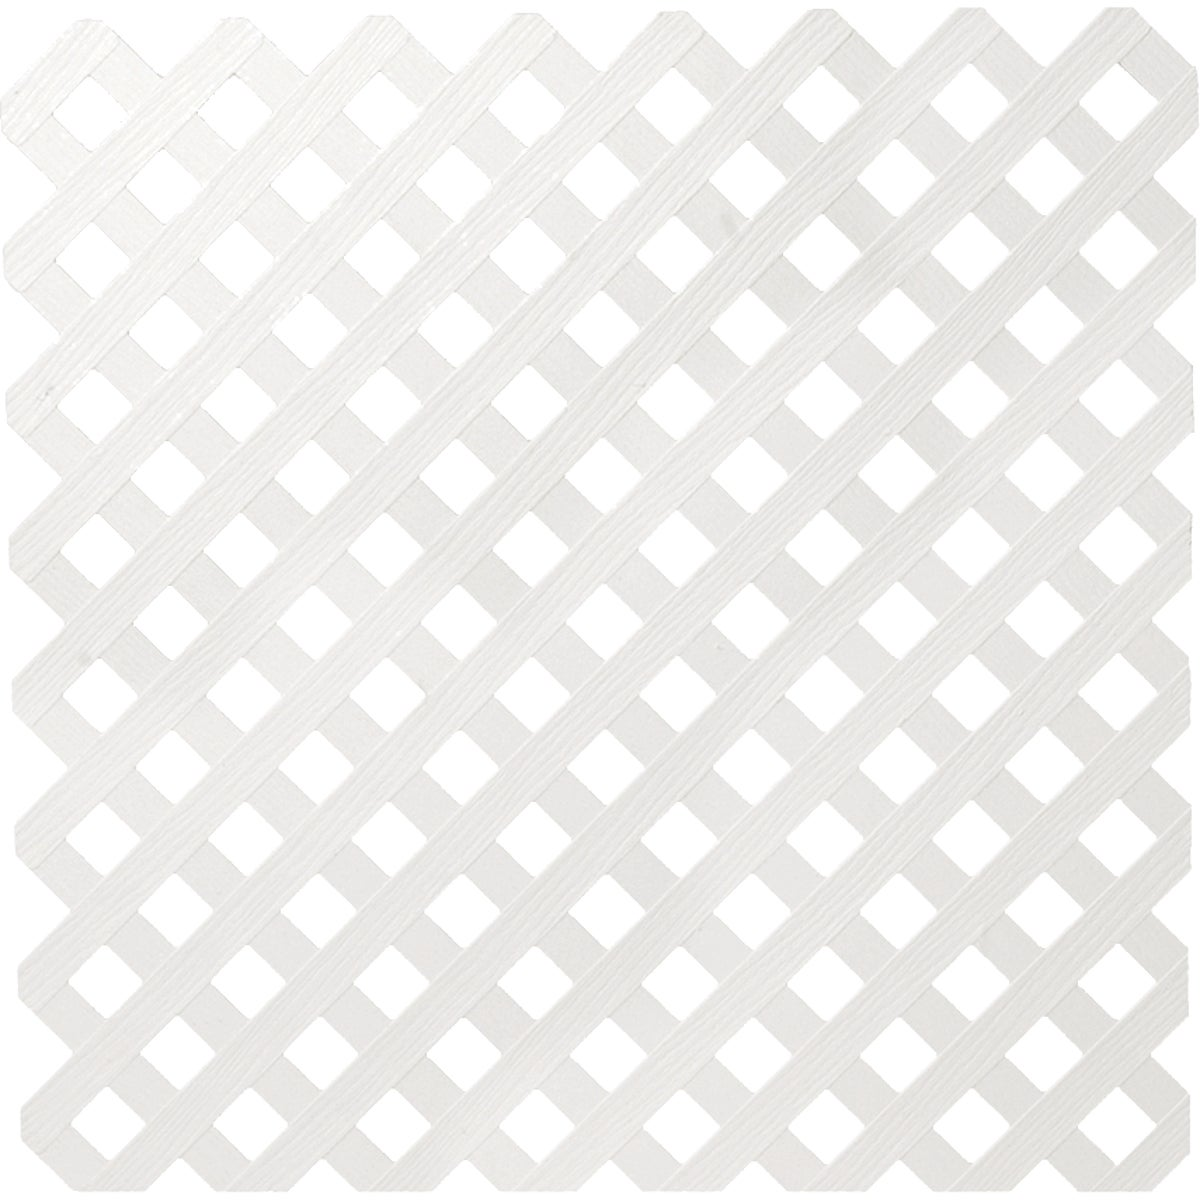 4X8 WHT PRIVACY LATTICE